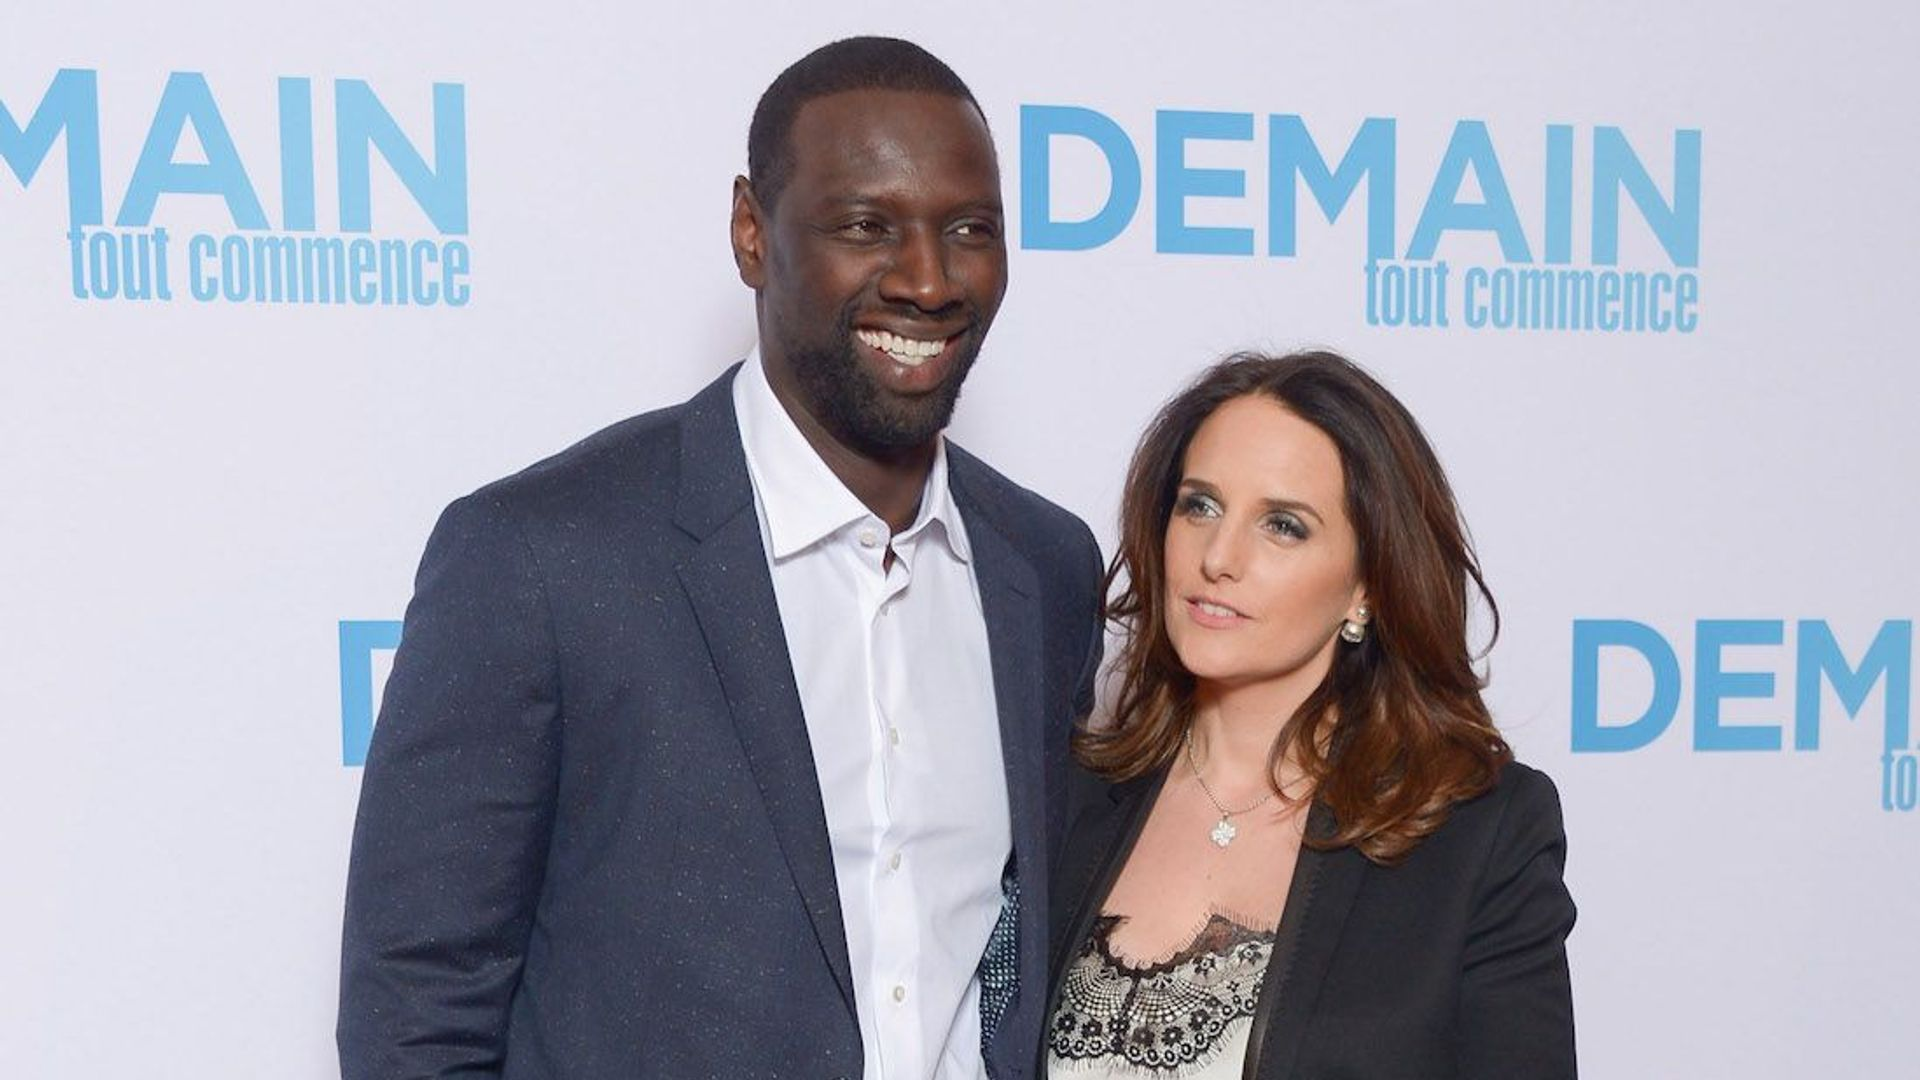 omar sy femme rencontre